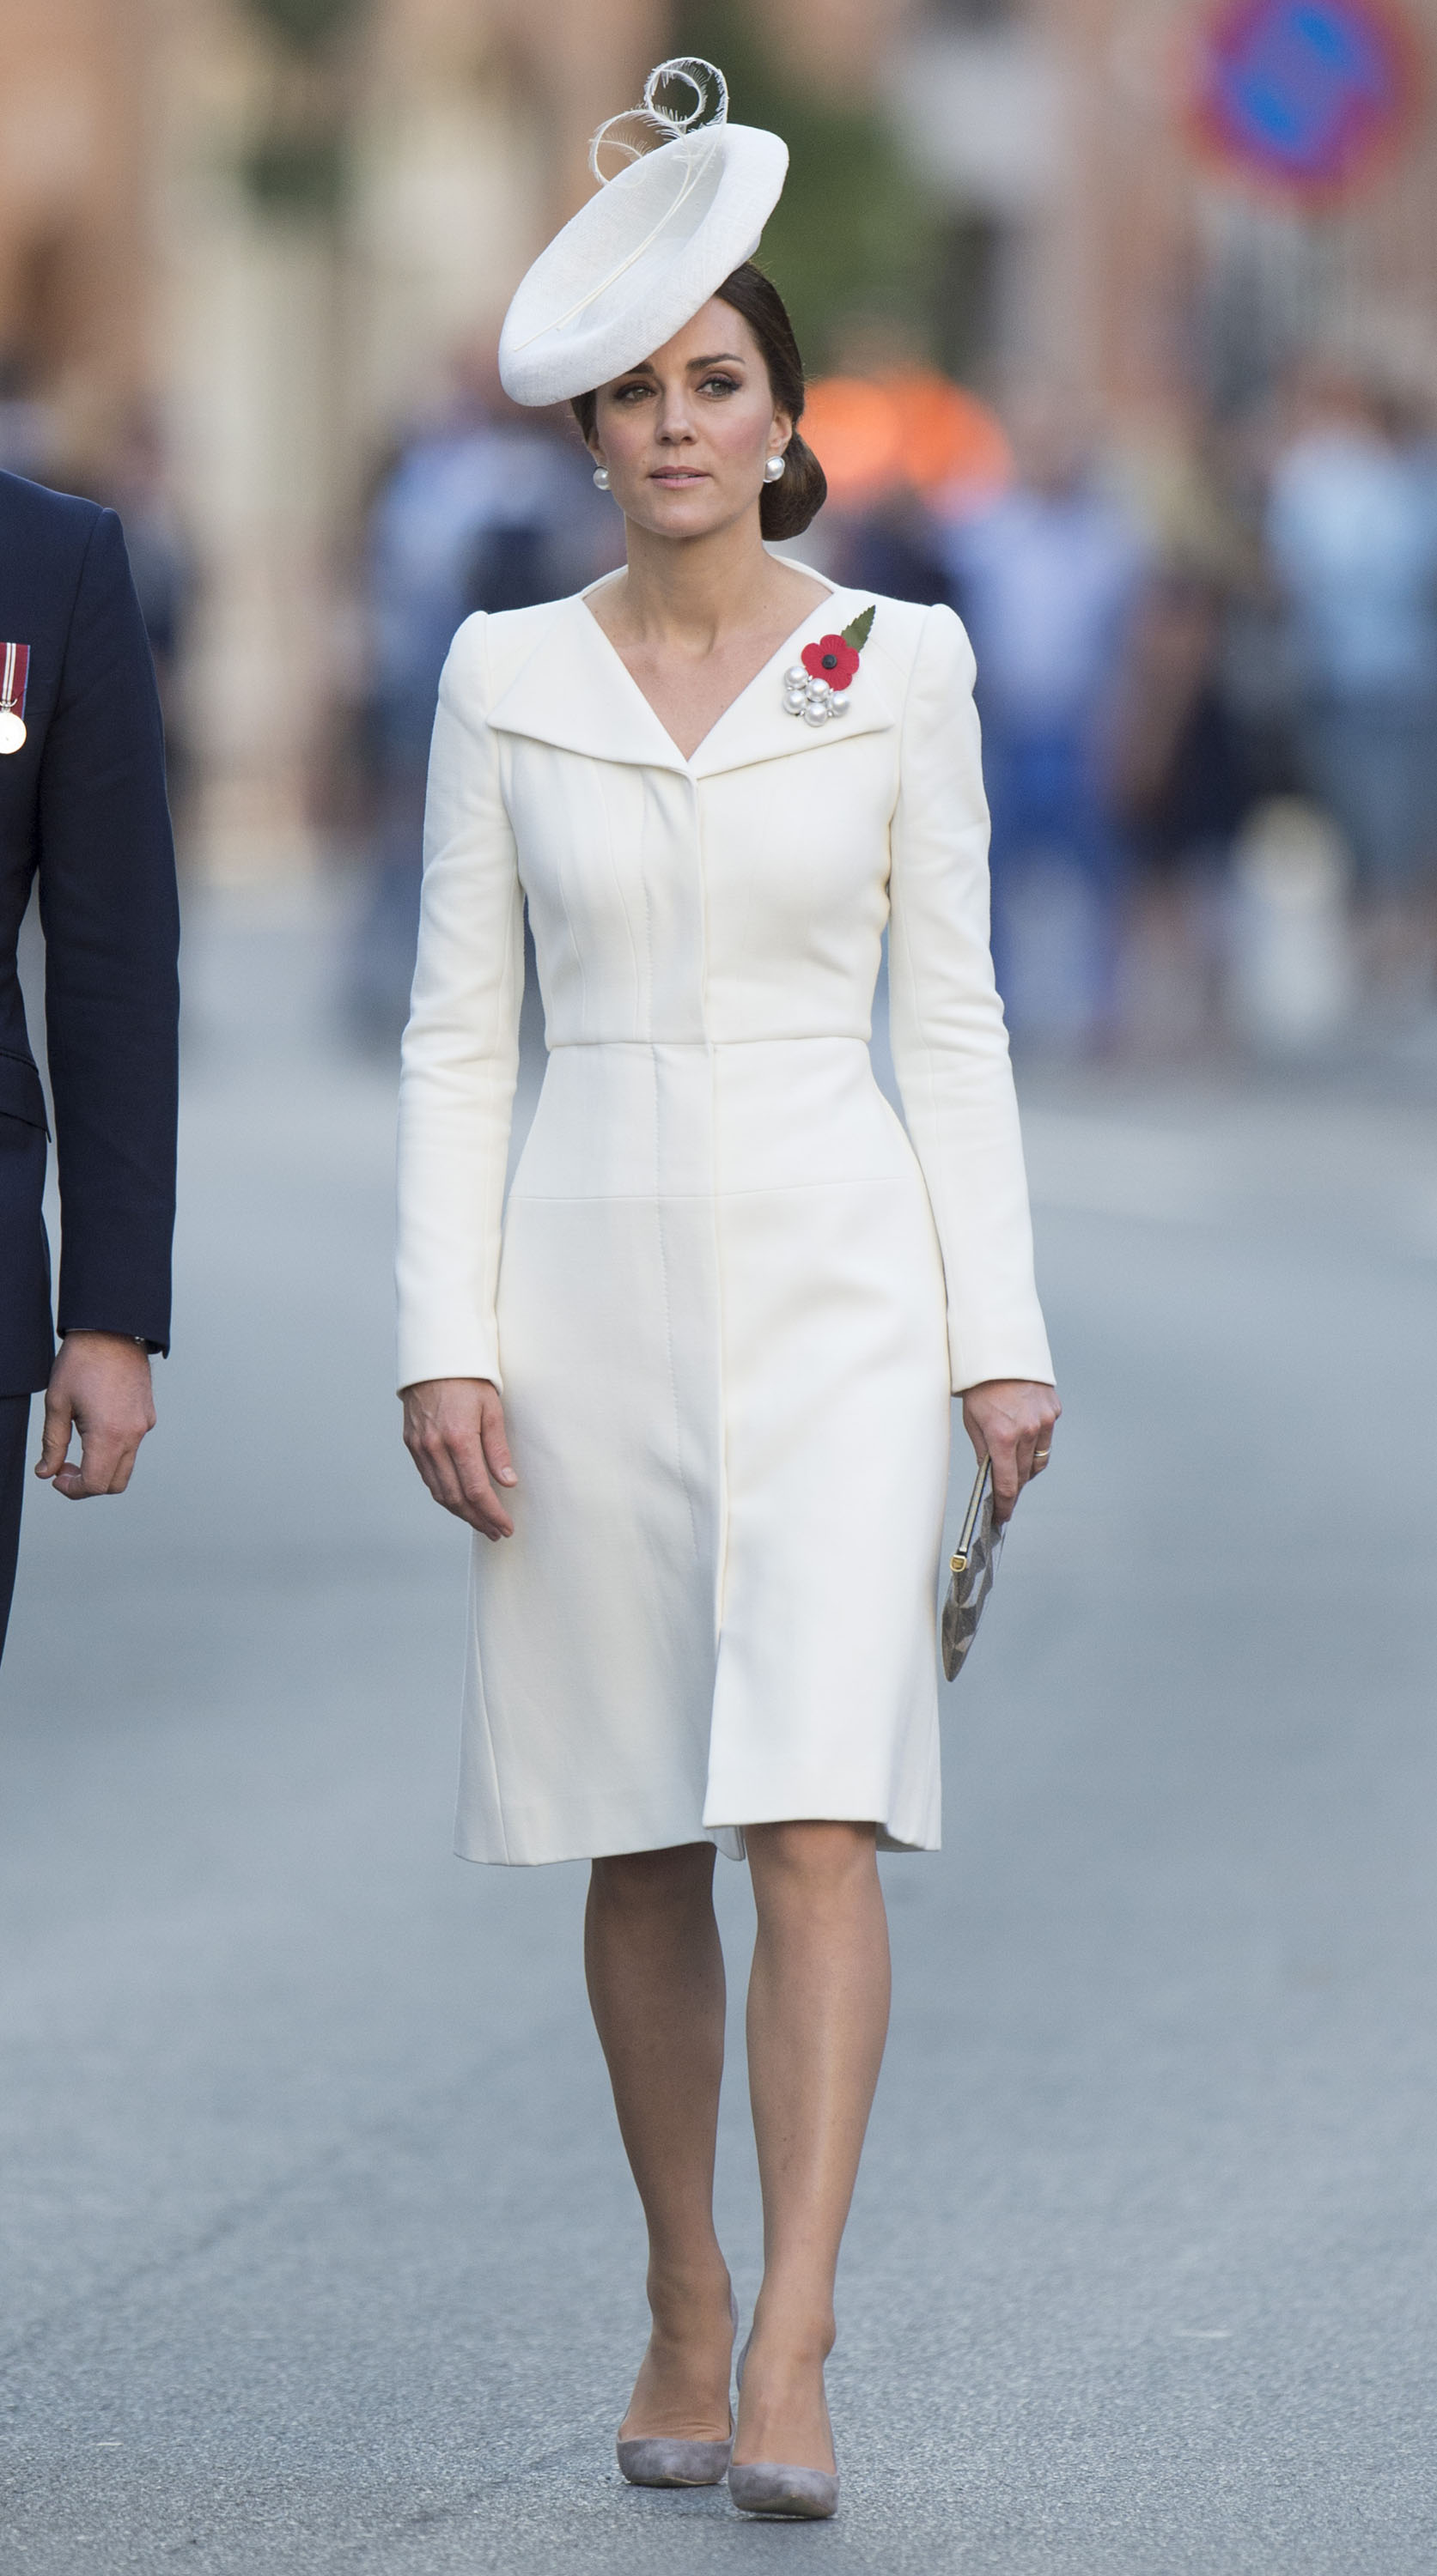 Kate Middleton Best Fashion and Style Moments - Kate ...